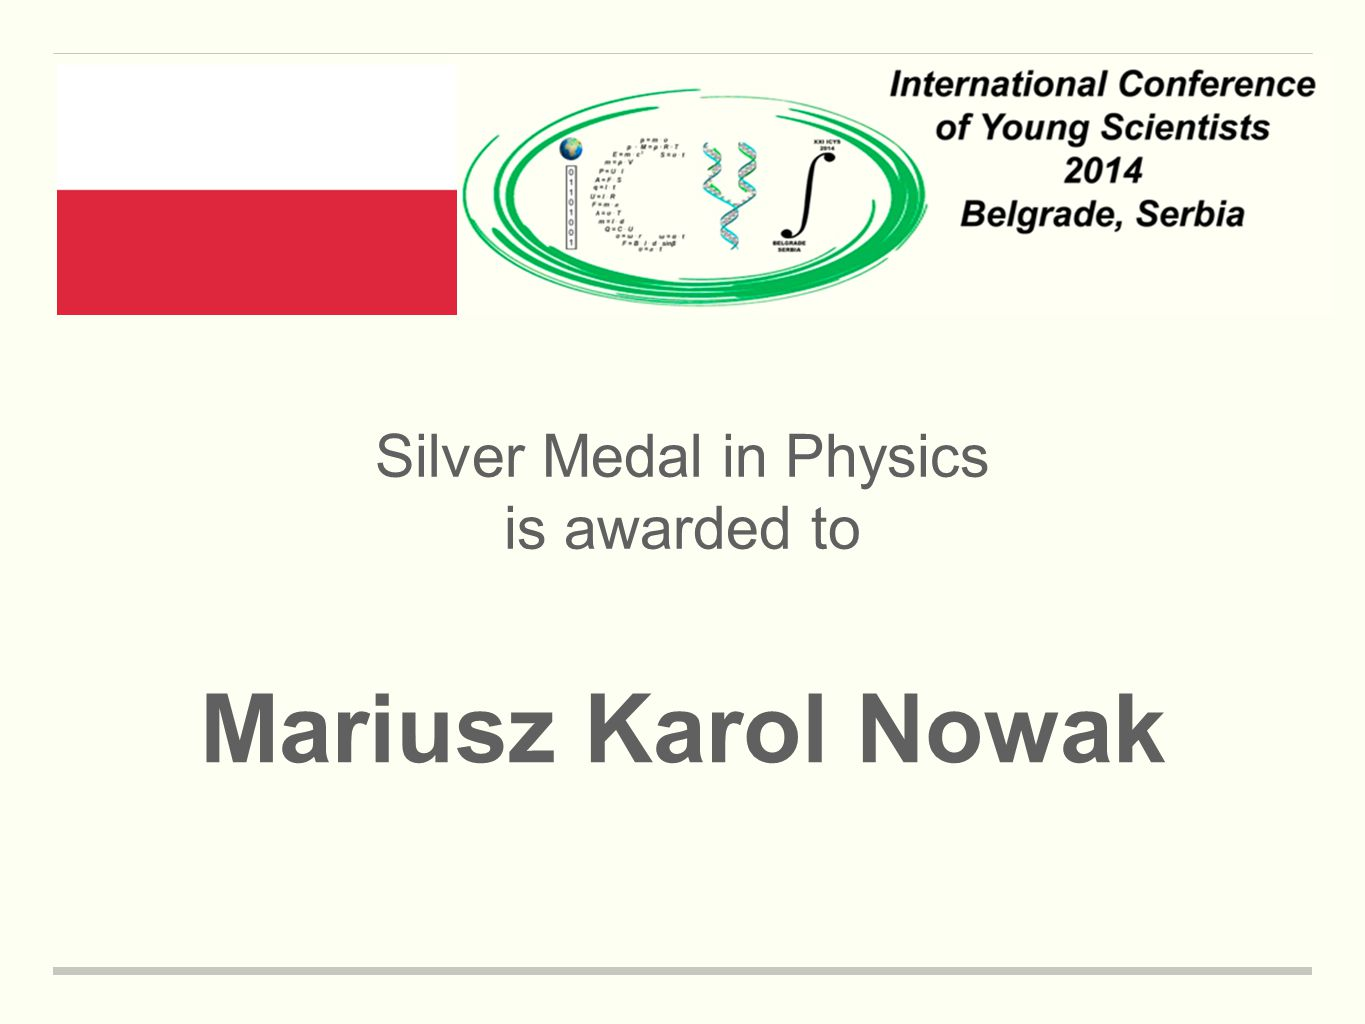 Silver Medal in Physics is awarded to Mariusz Karol Nowak